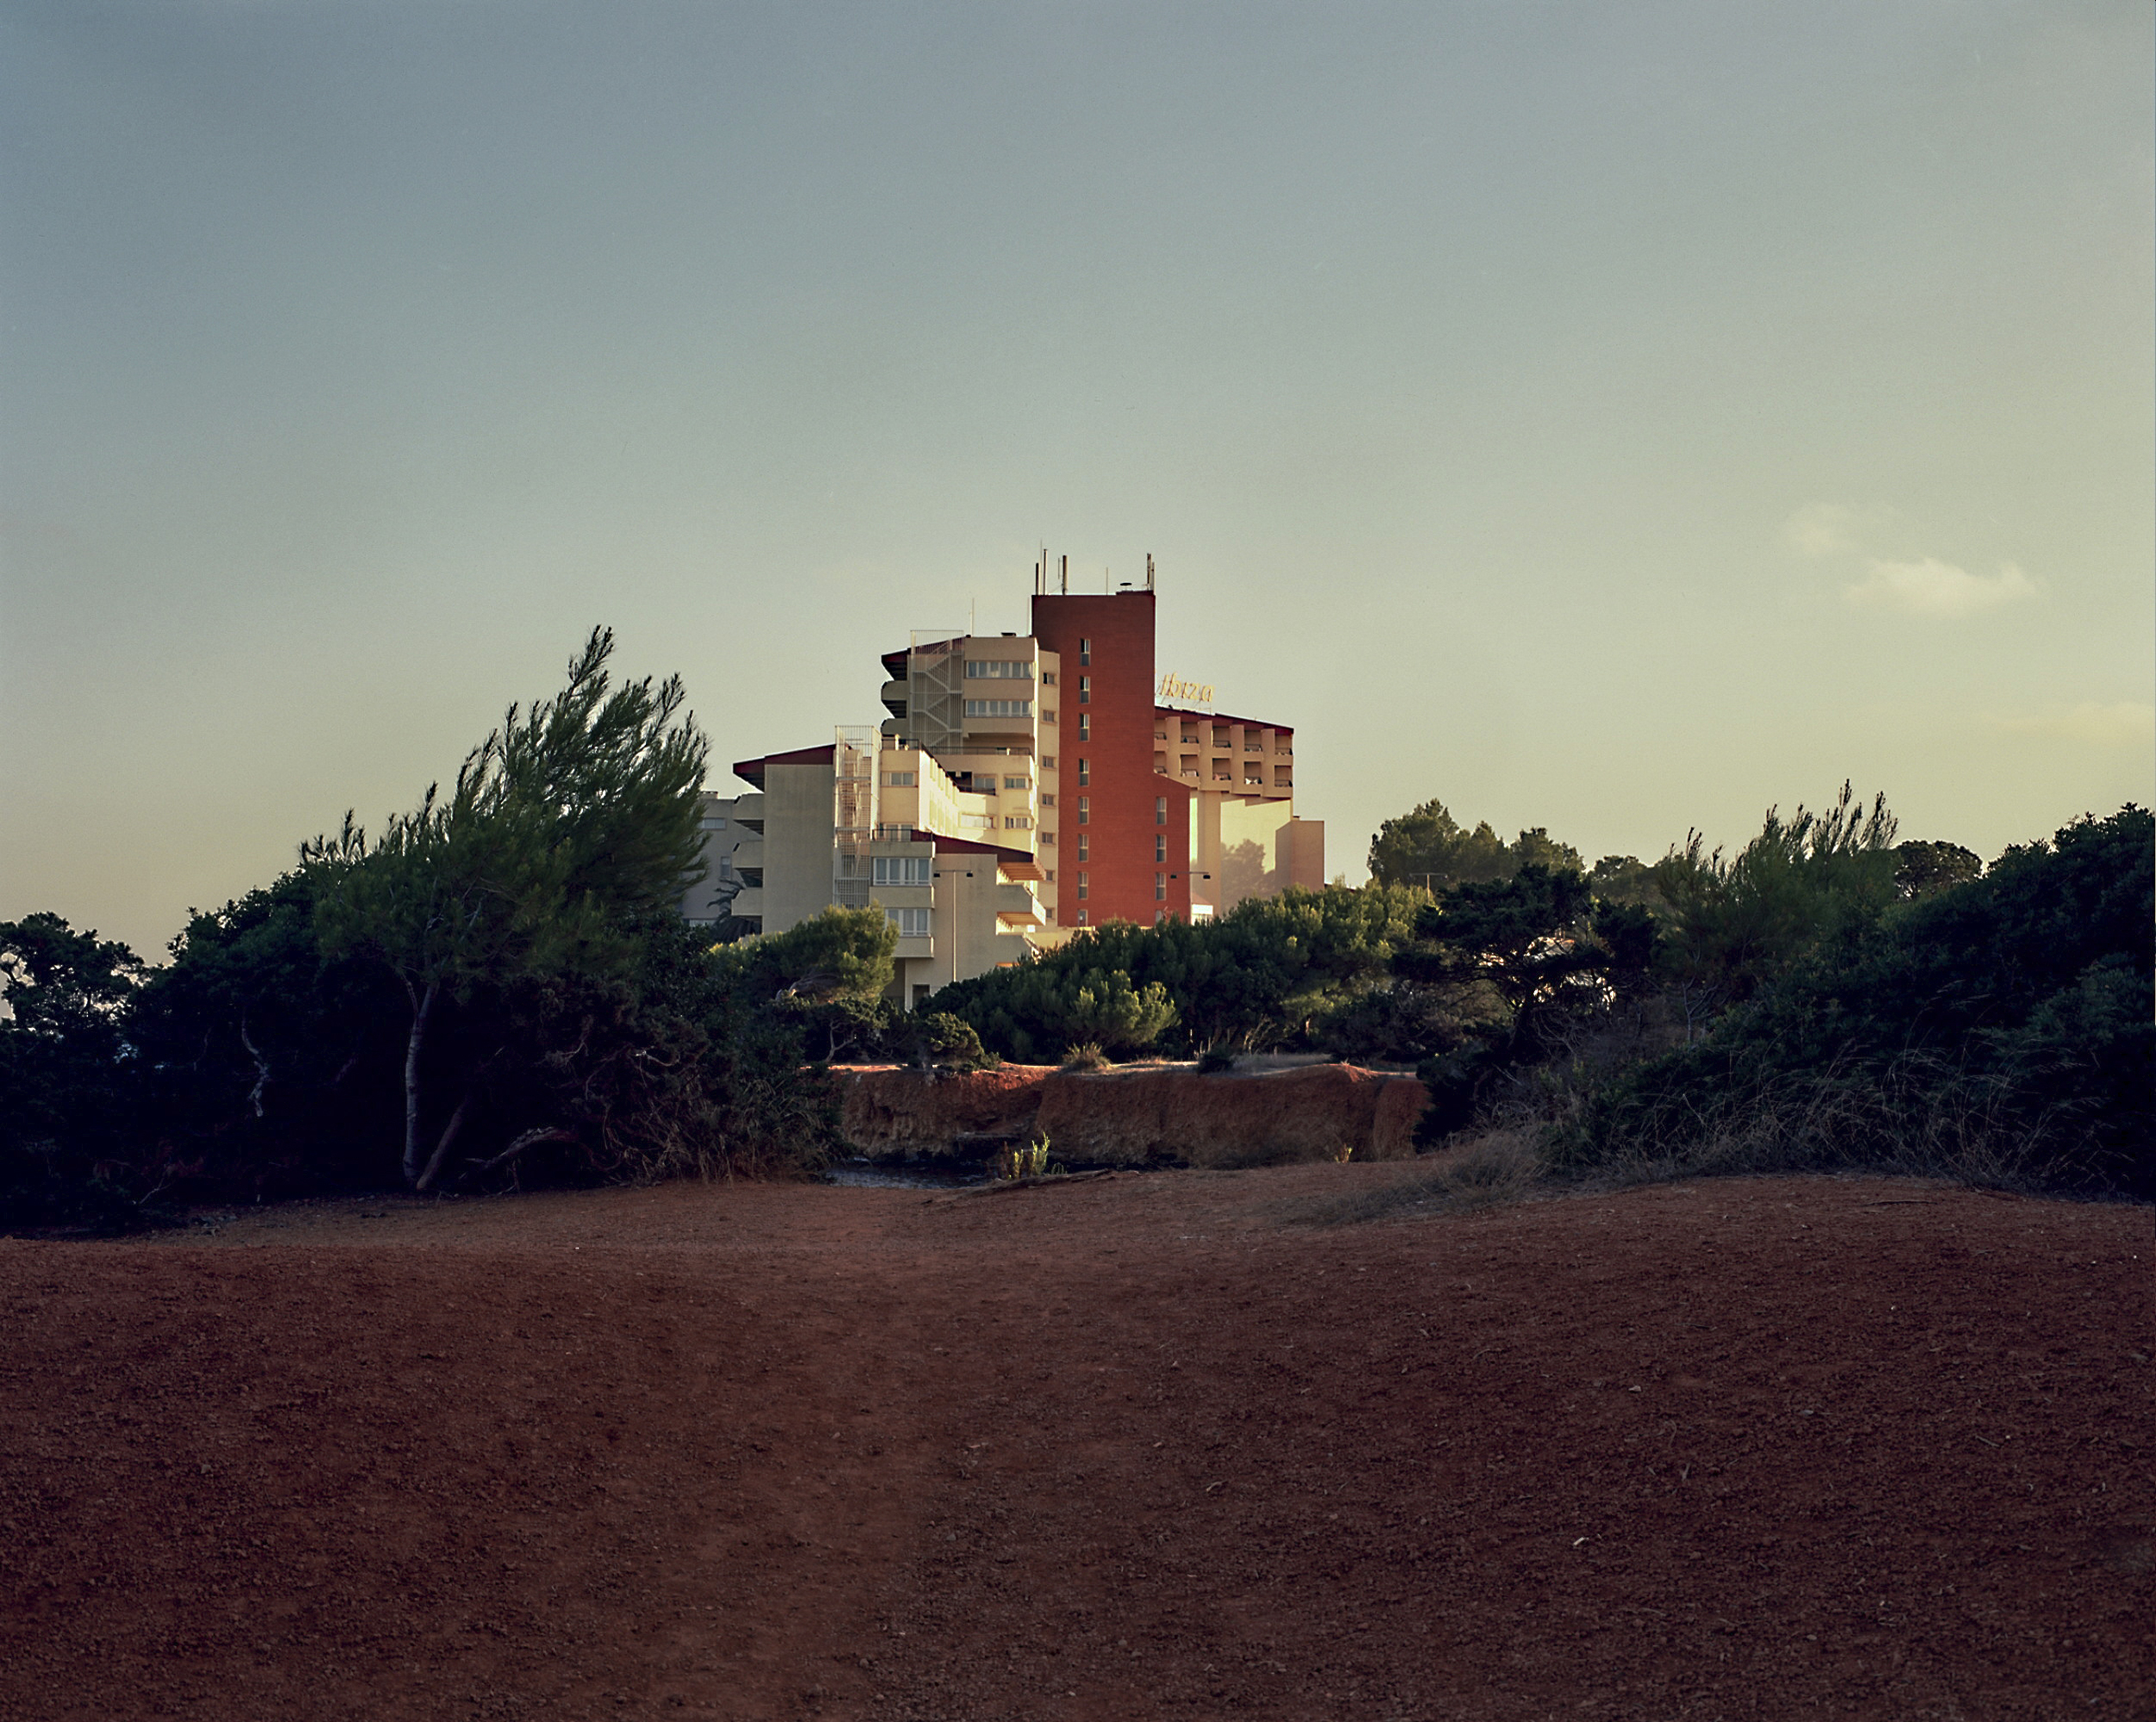 From series 'Foreign Spaces'